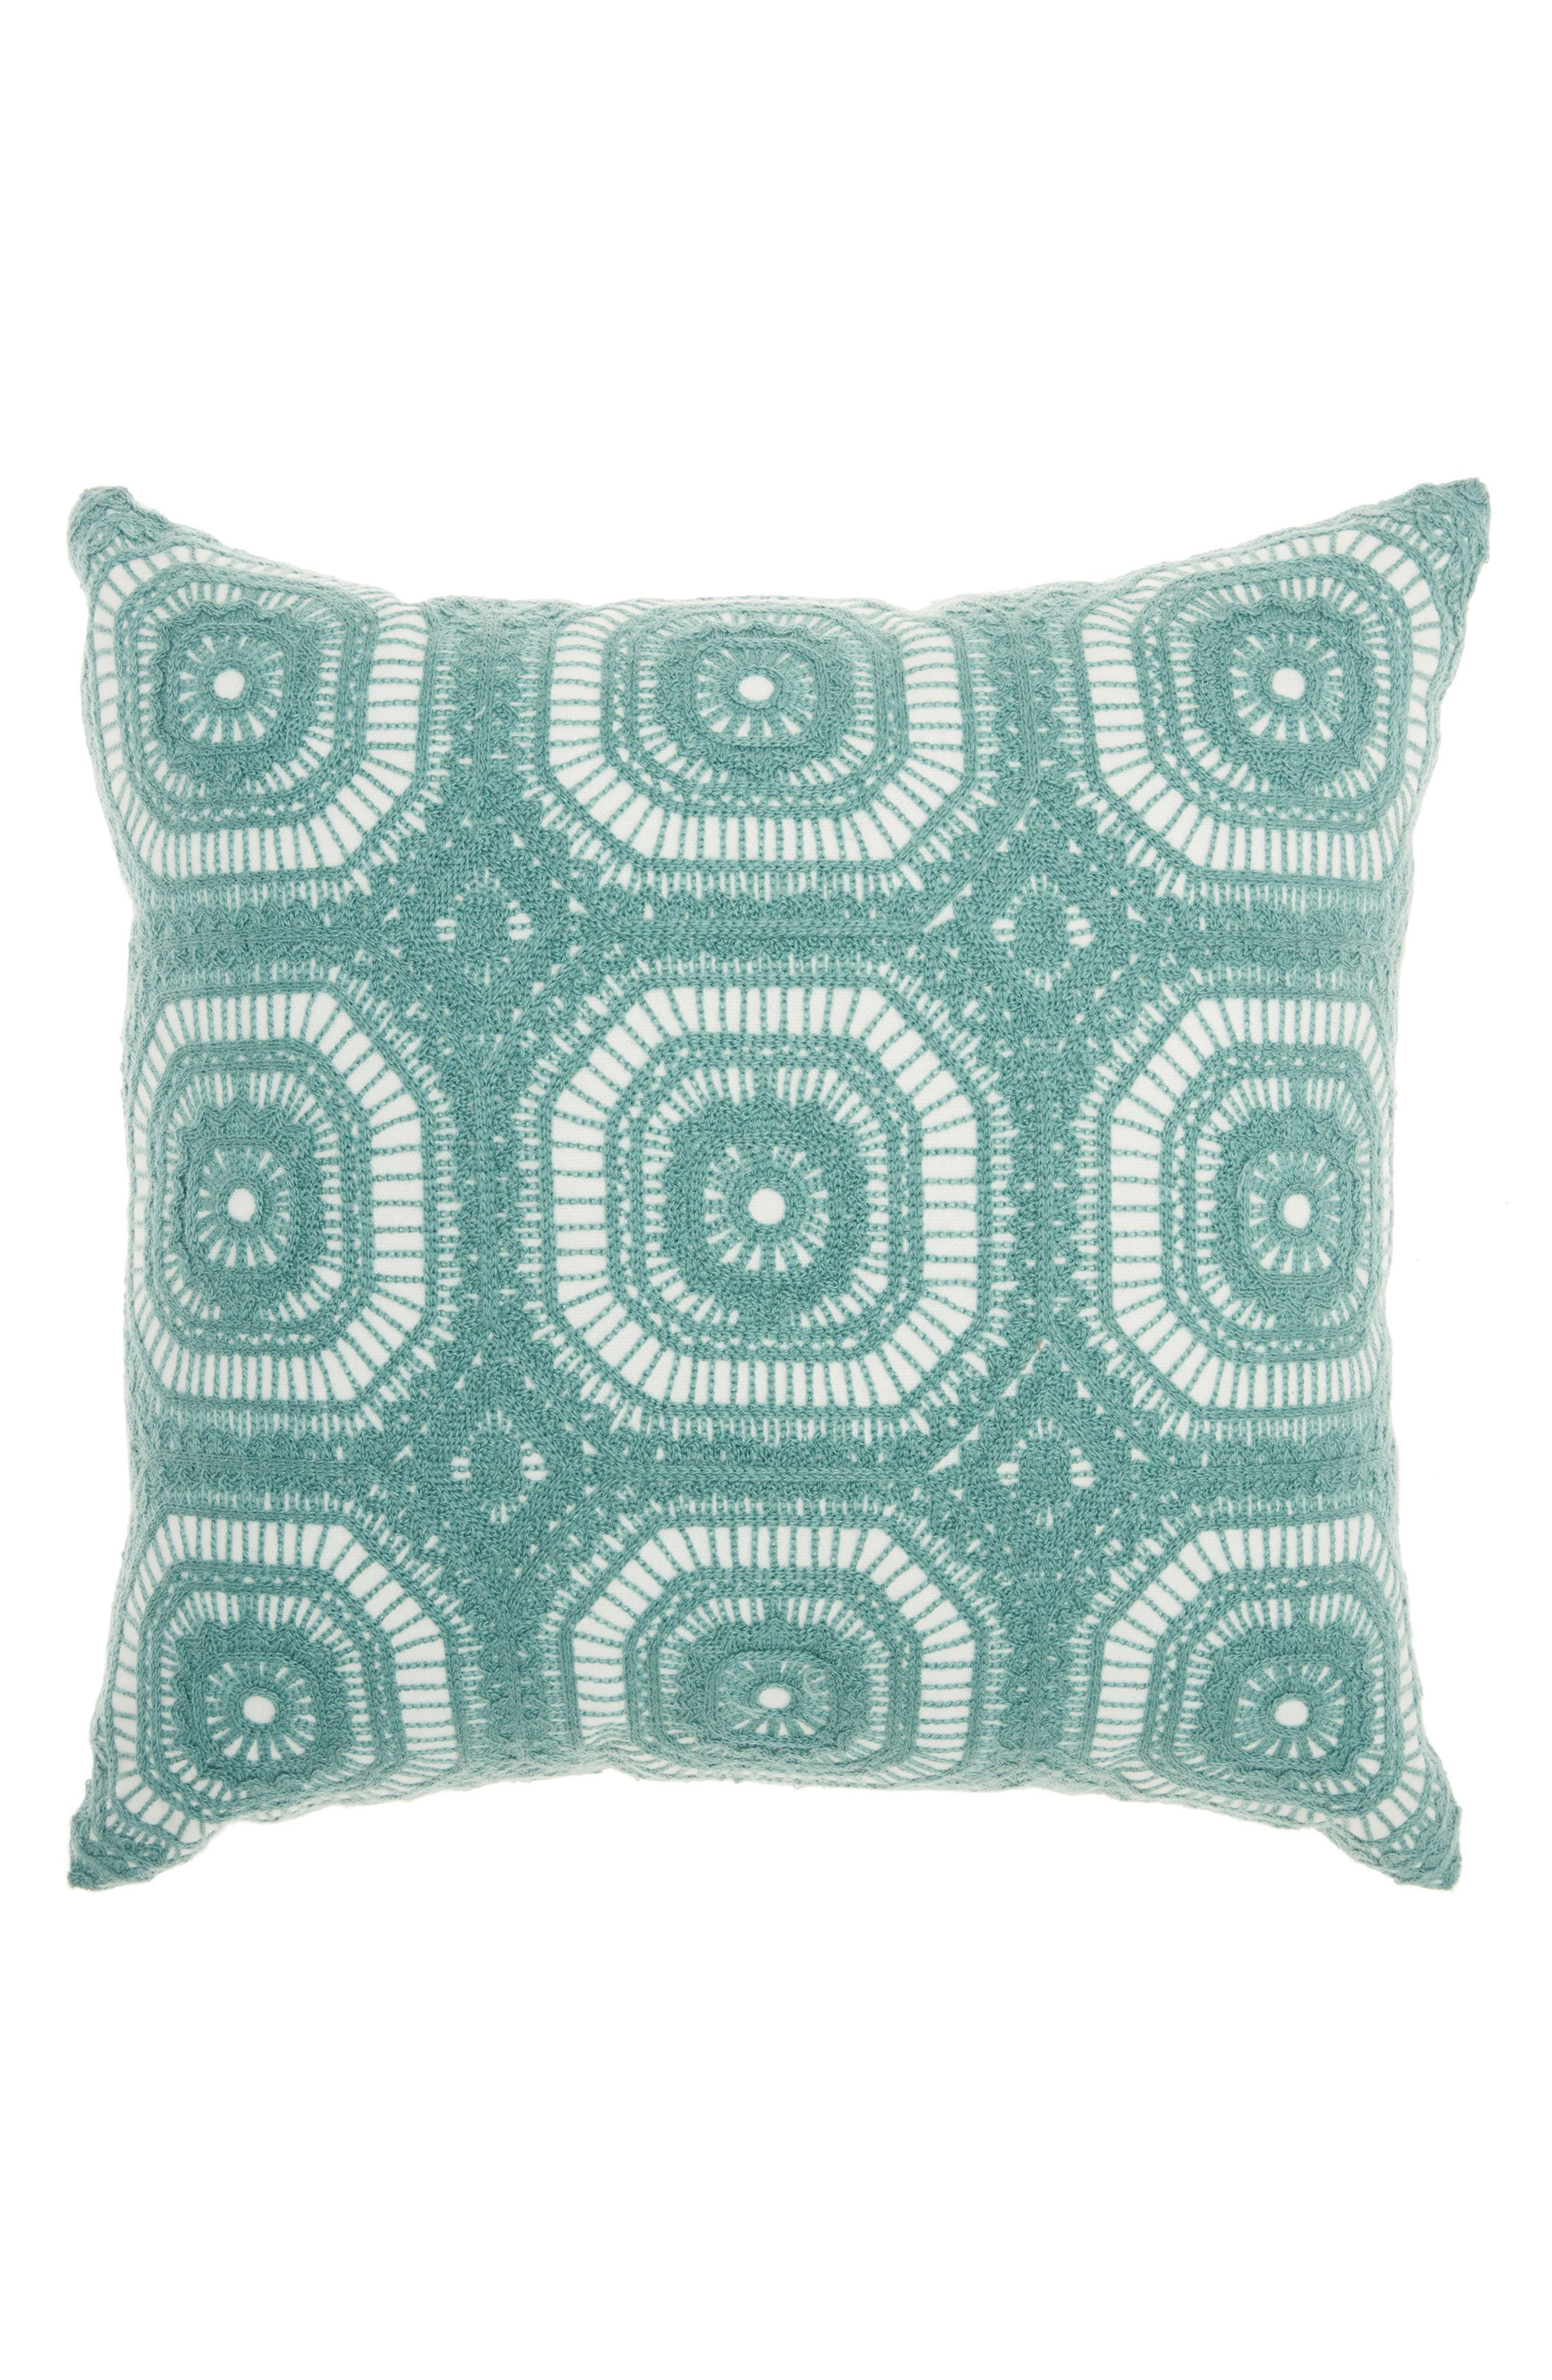 Tile Embroidered Accent Pillow,                         Main,                         color, 332